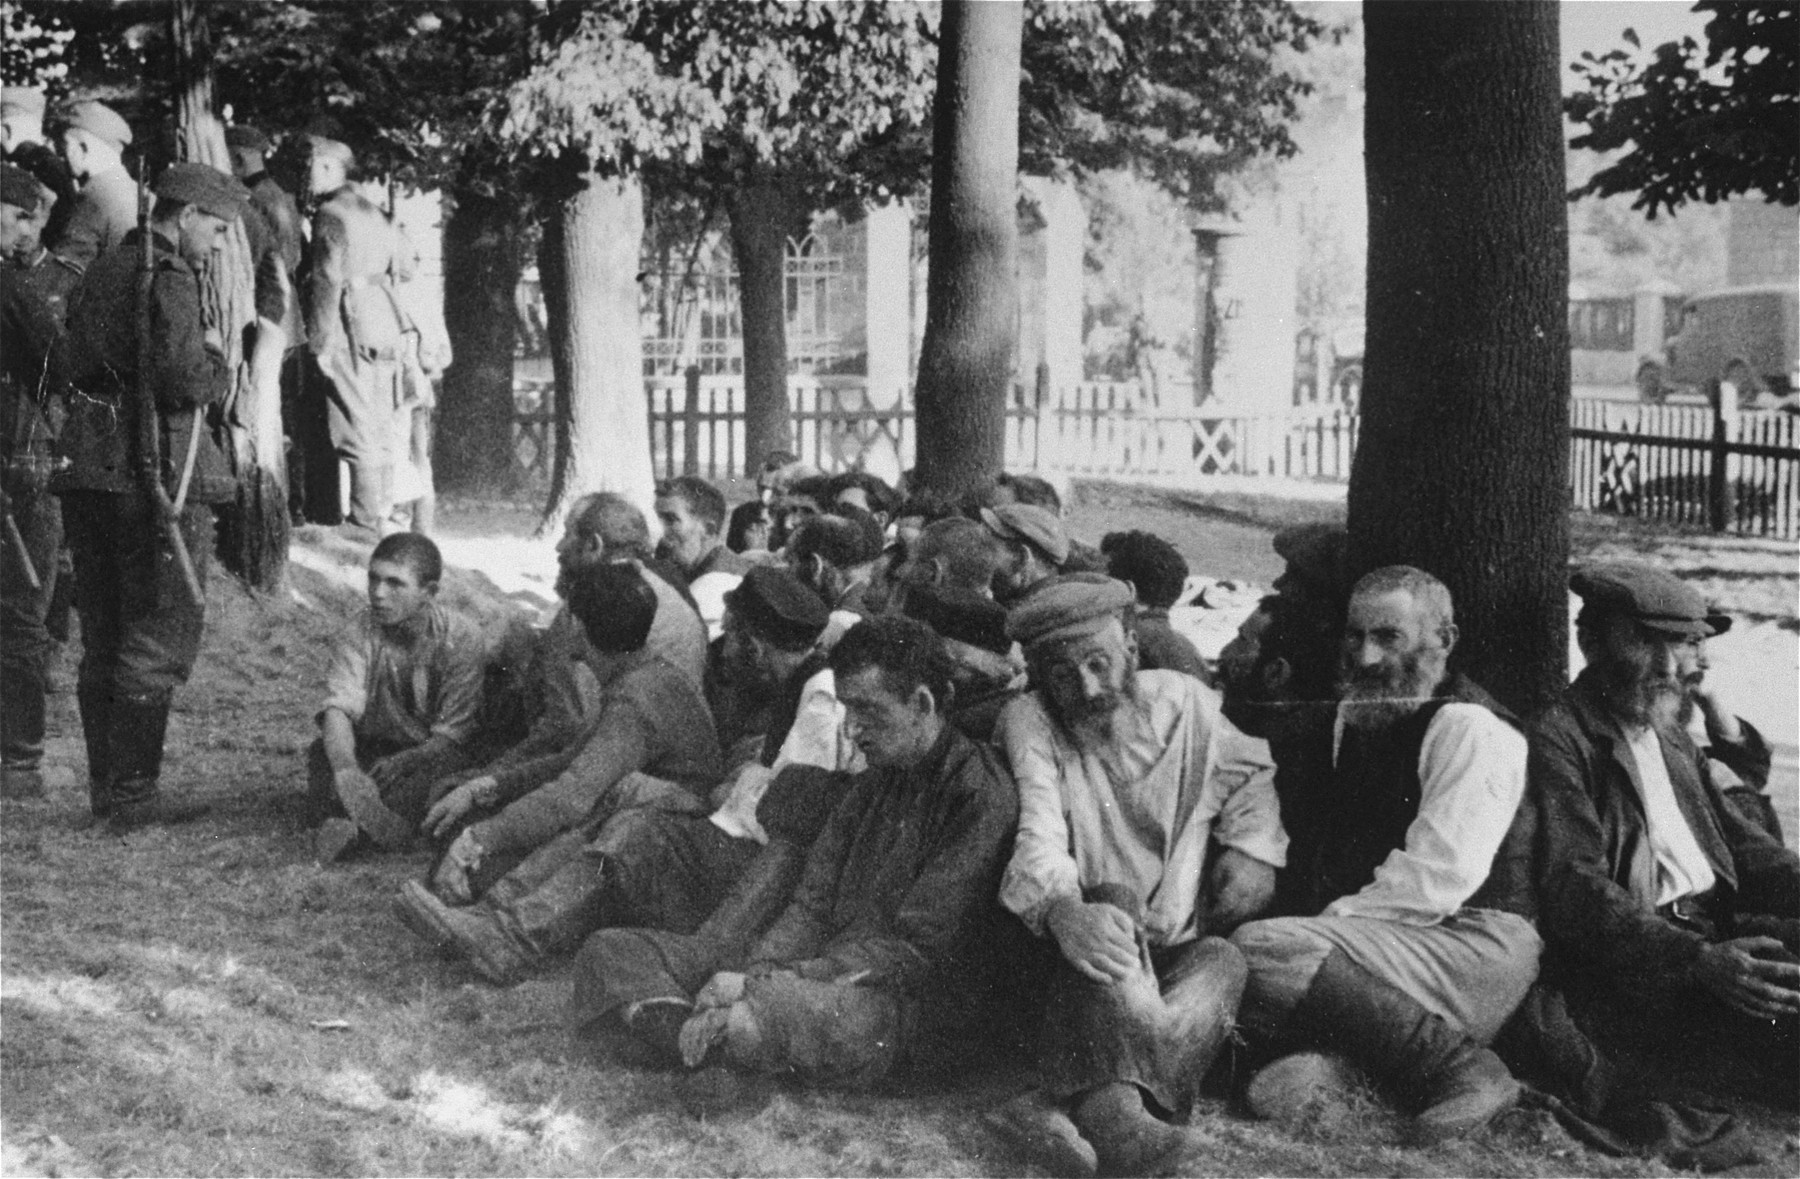 Jews rounded-up in Konskie wait for orders to participate in the digging of a grave for the bodies of four German soldiers.